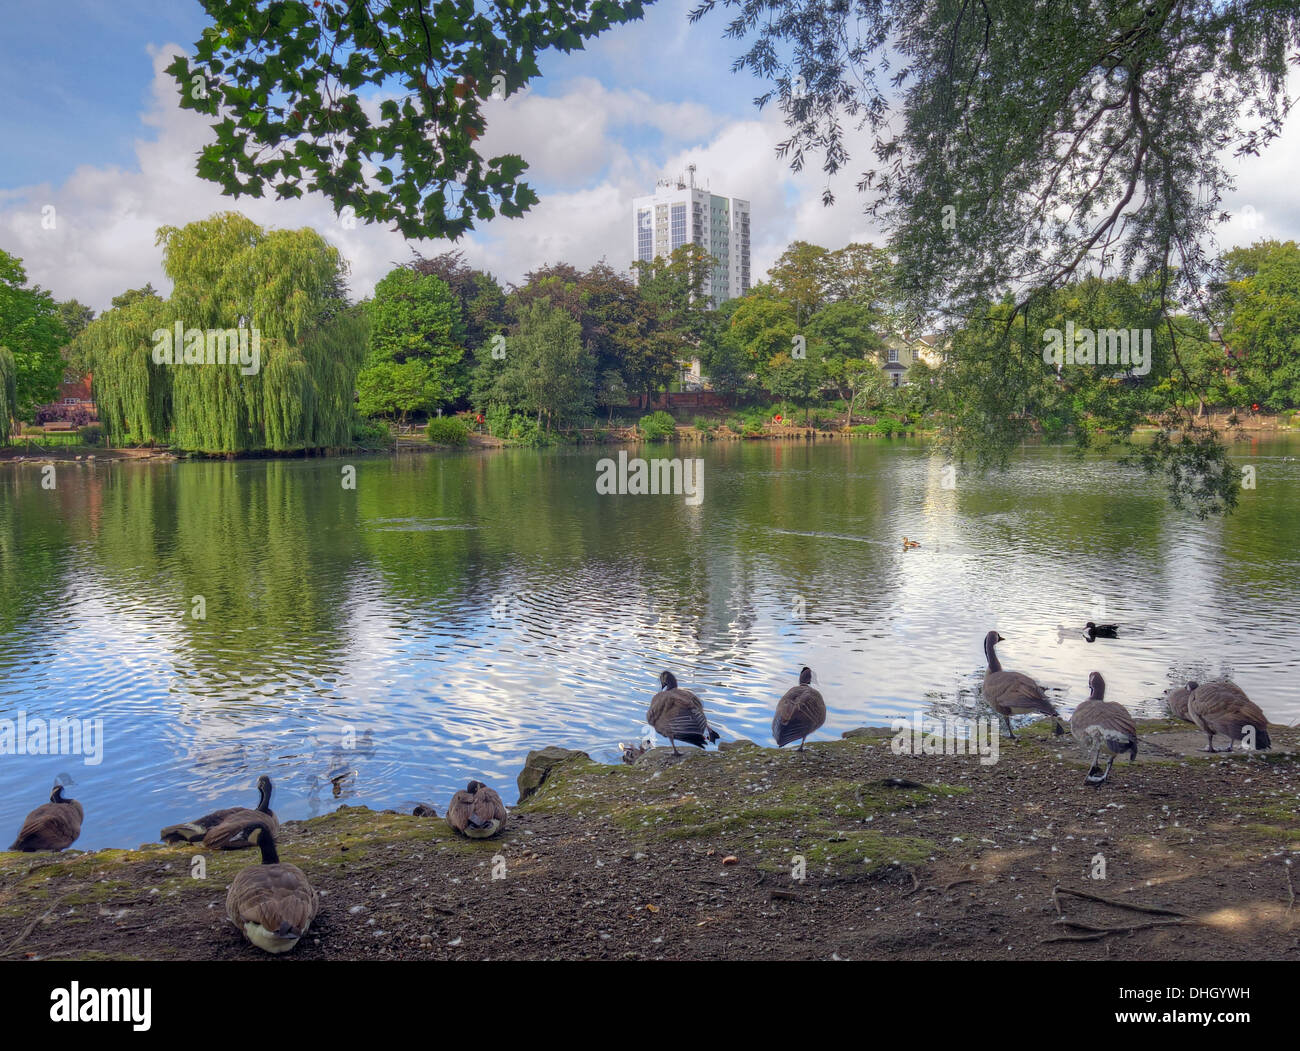 England,UK,GB,Victorian,public,park,conservation,area,Lake,Company,white-clawed,crayfish,was,discovered,in,Hatherton,Lake,rare,crayfish,cray,fish,ducks,geese,goose,water,trees,summer,2013,tower,block,CESP,Austin,house,solar,PV,eco,green,Lichfield,Street,gotonysmith,Black,Country,Buy Pictures of,Buy Images Of,Black Country,Walsall Black Country